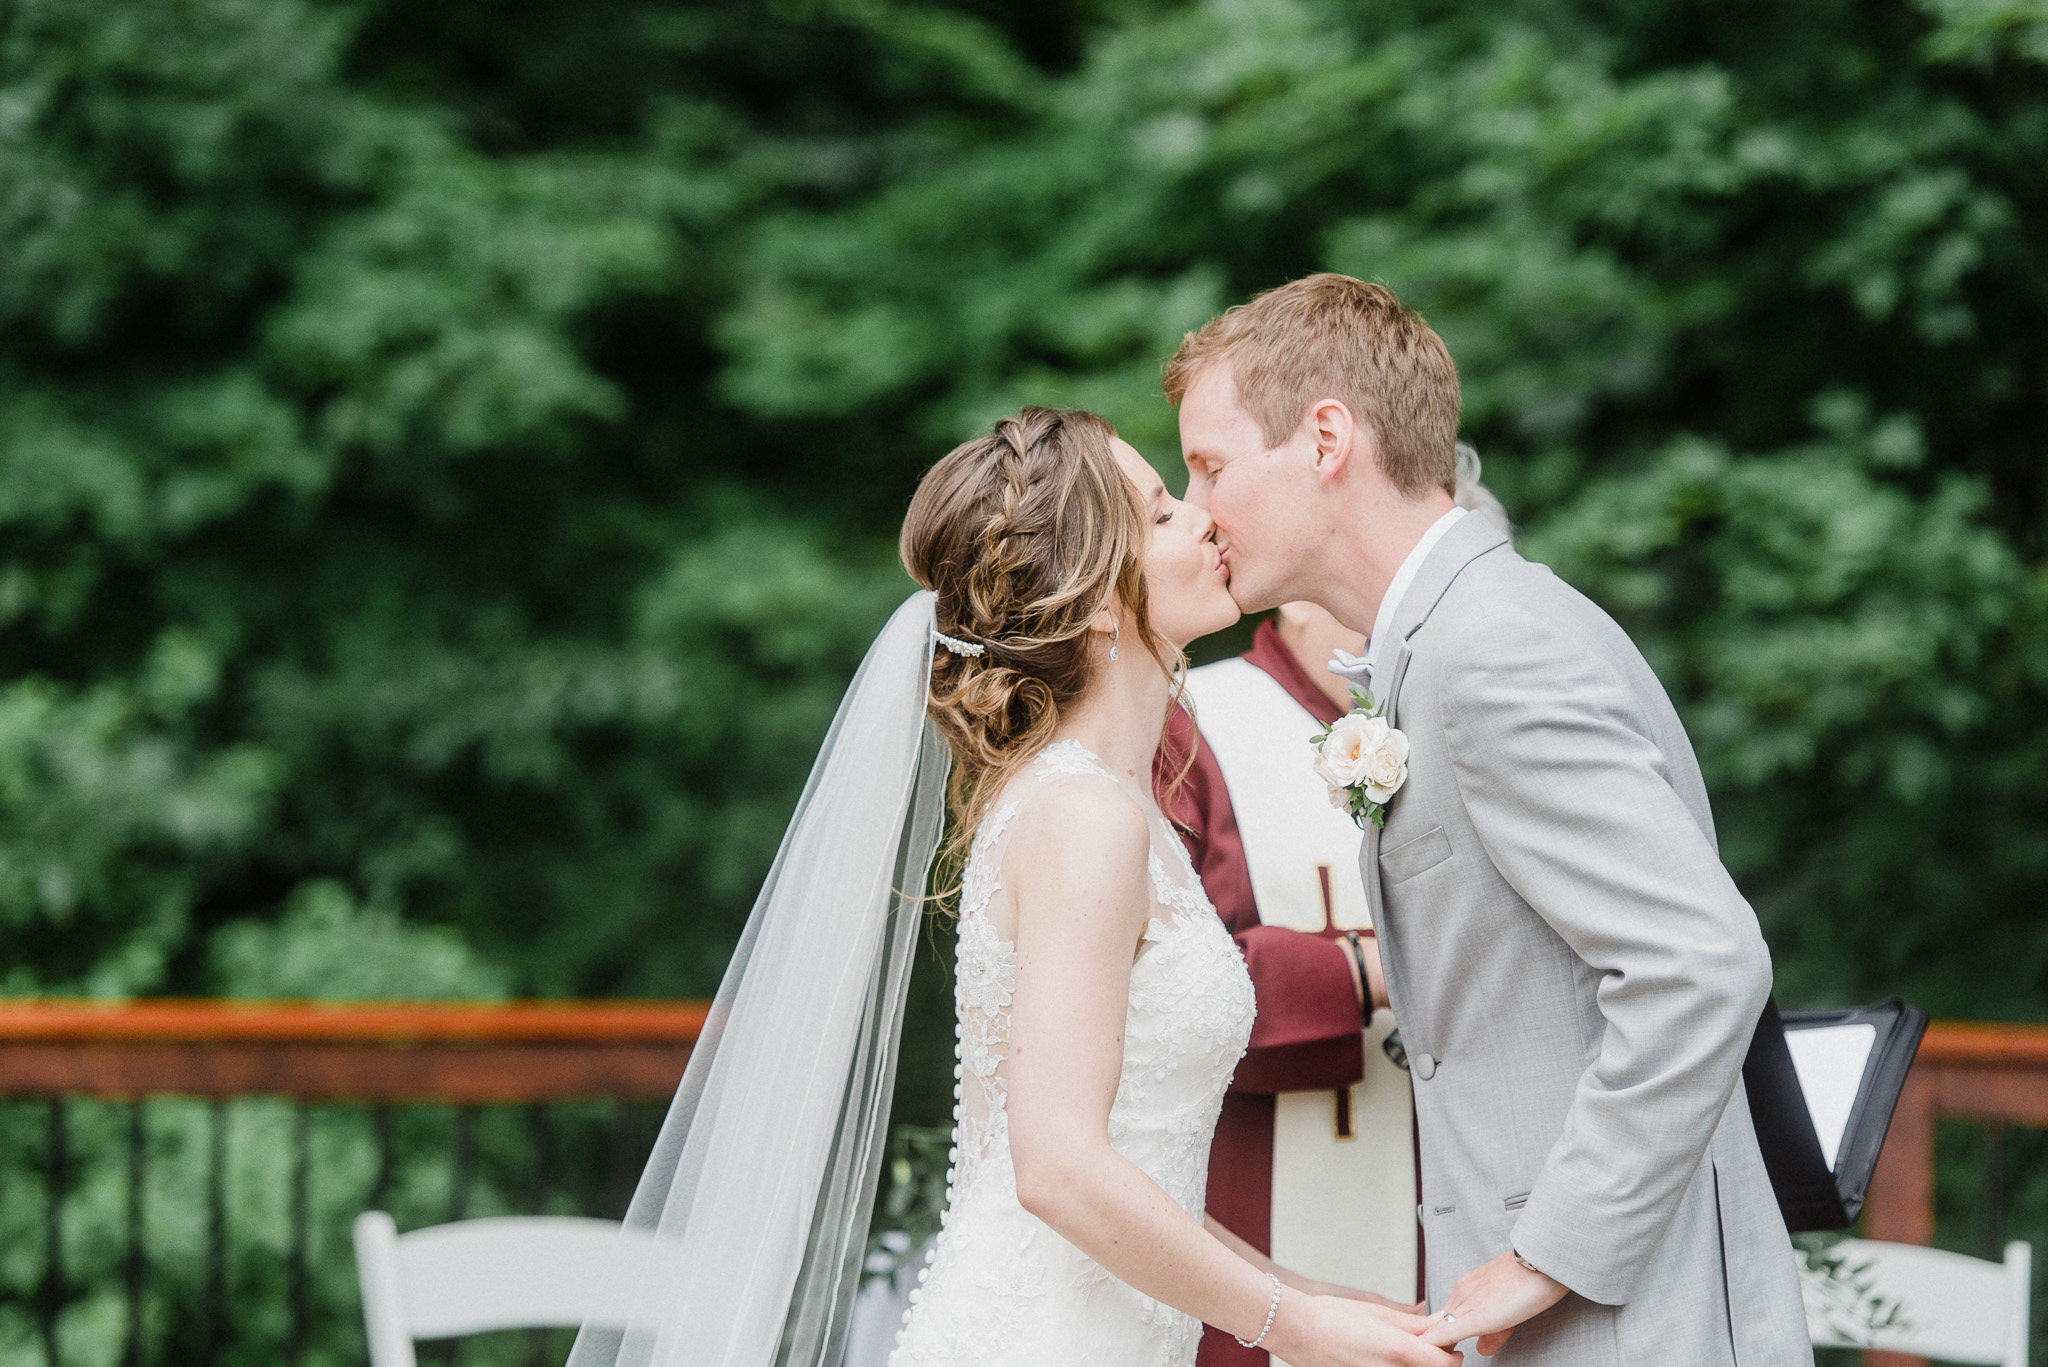 Outdoor ceremony at Crosswinds Golf & Country Club by Jenn Kavanagh Photography